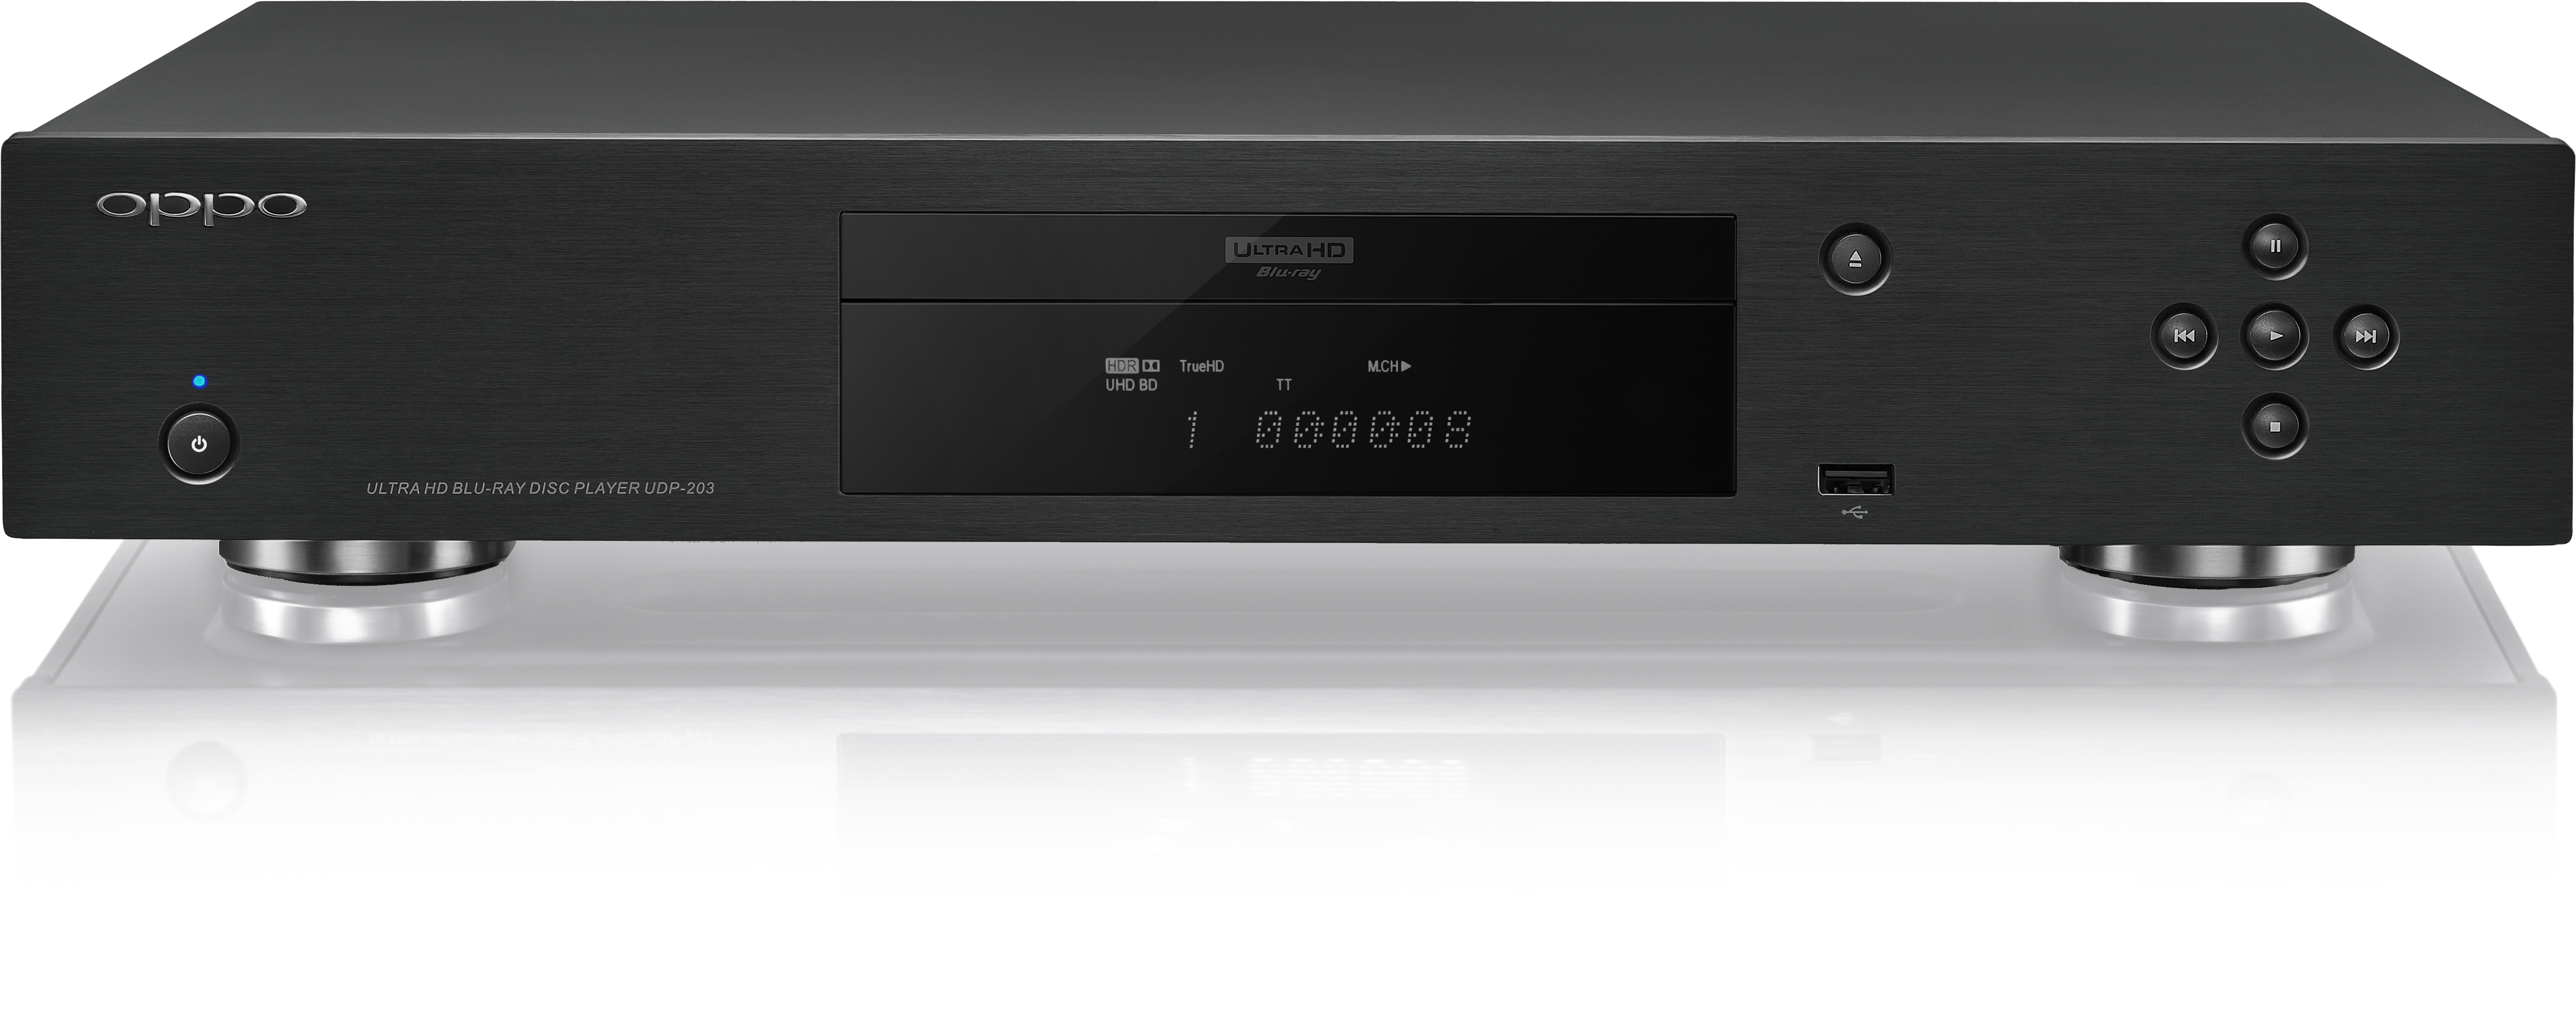 oppo udp 203 4k ultra hd blu ray disc player